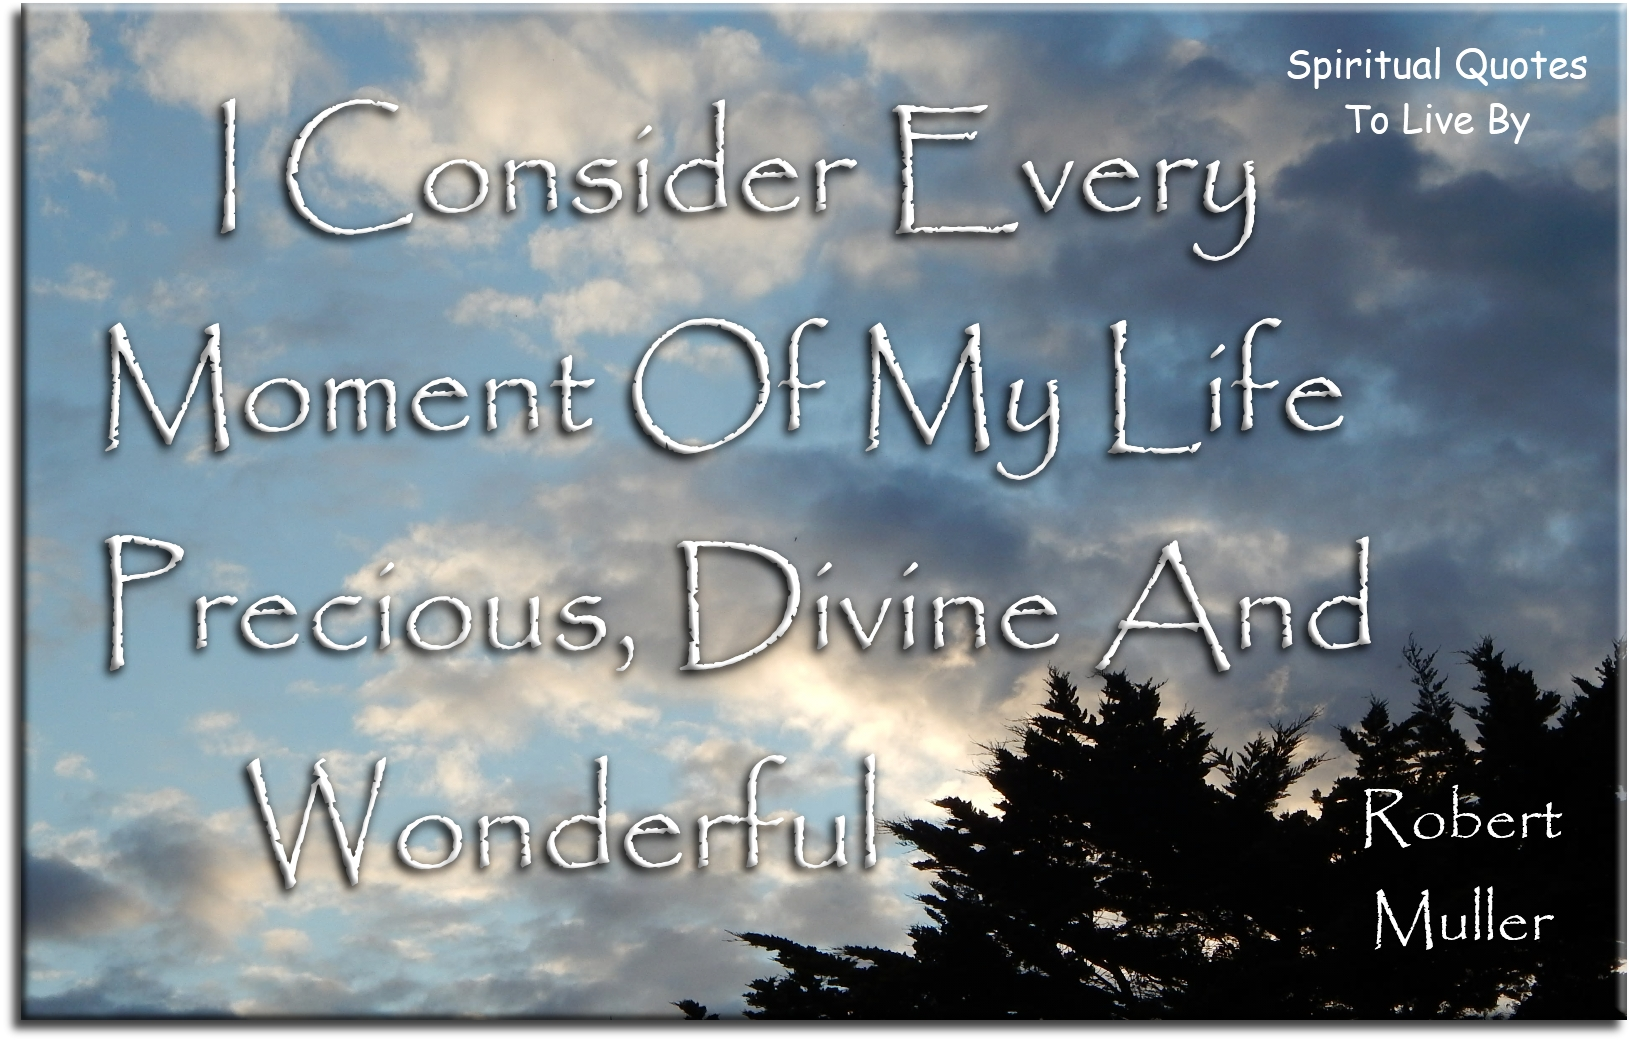 Robert Muller quote: I consider every moment of my life precious, Divine and wonderful. - Spiritual Quotes To Live By